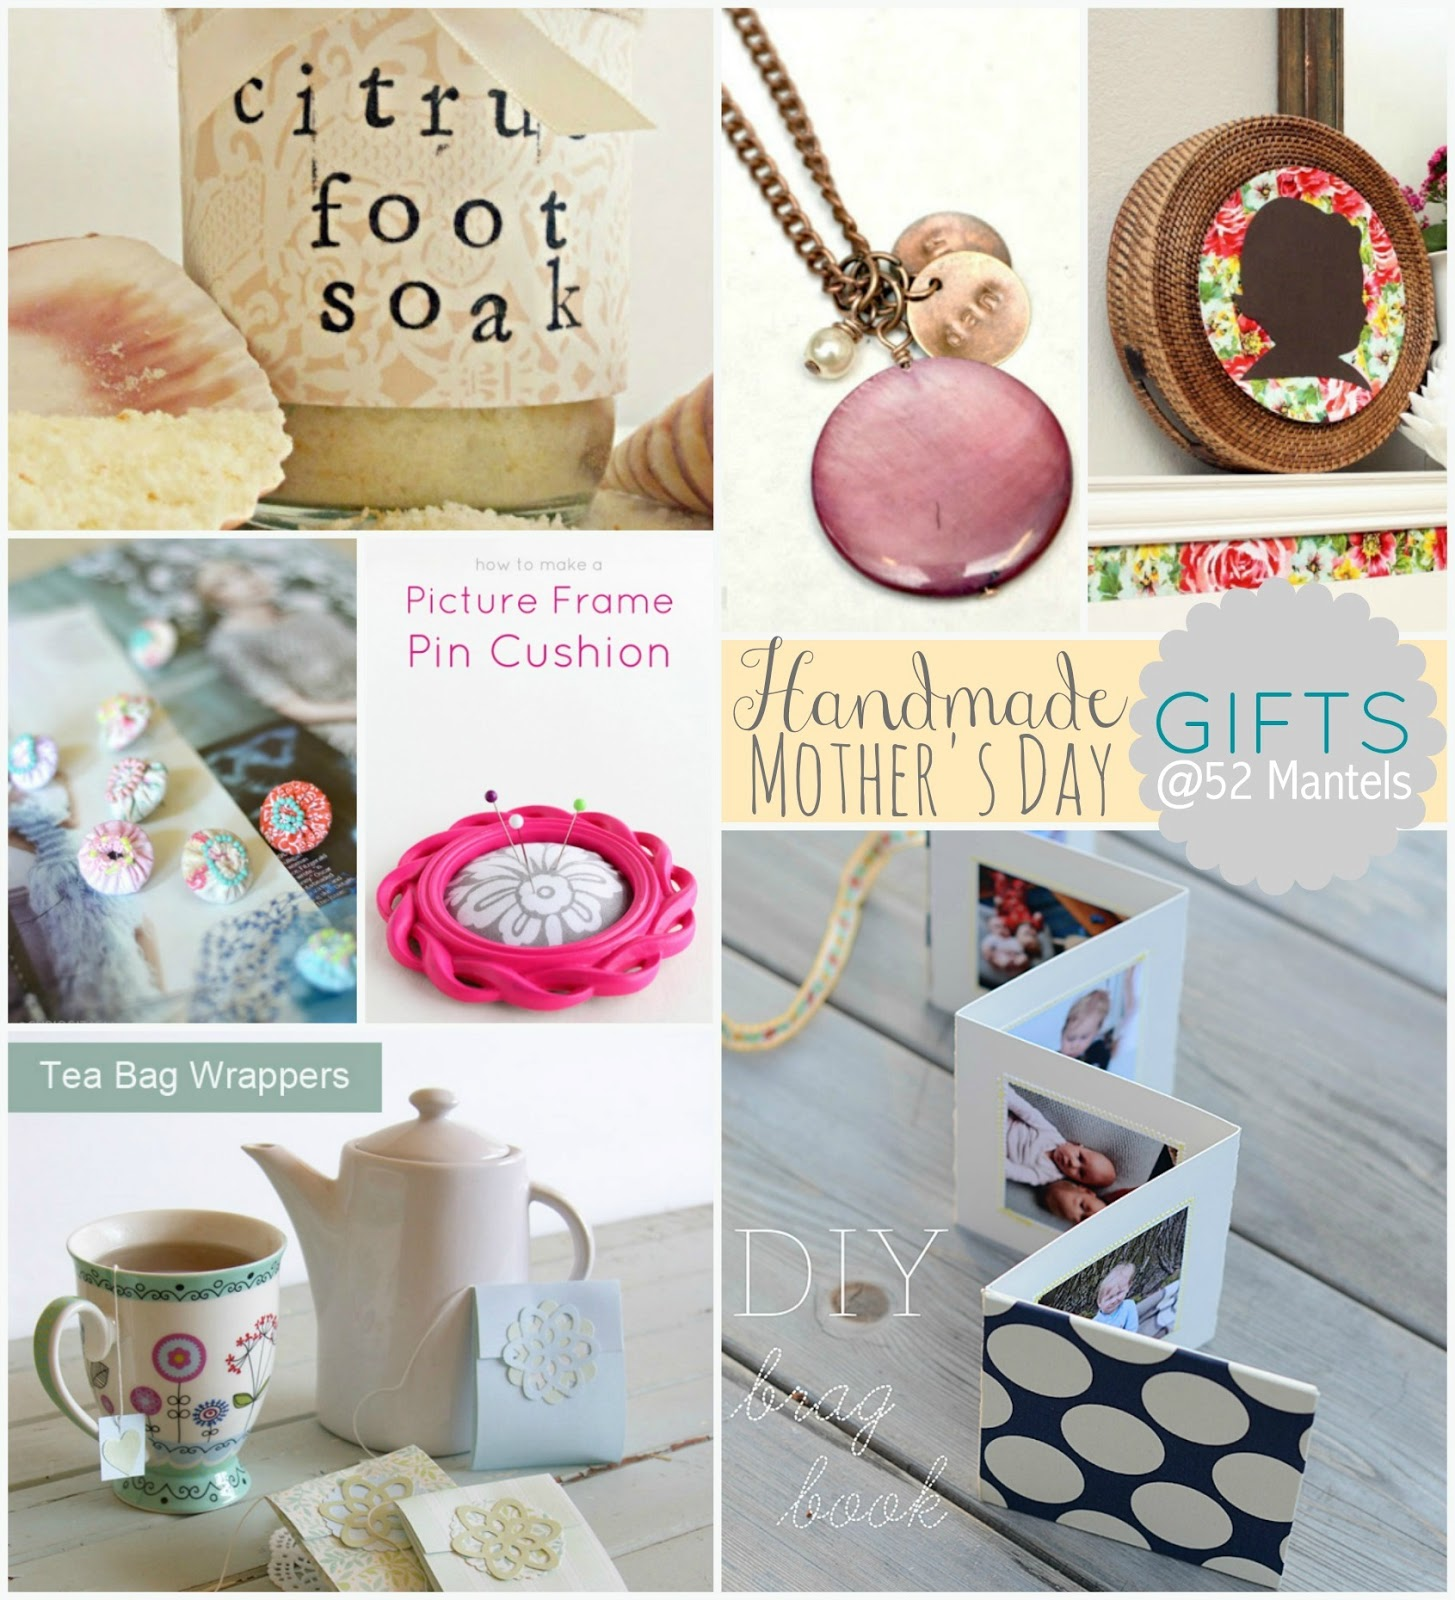 52 Mantels: Handmade Mother's Day Gift Ideas